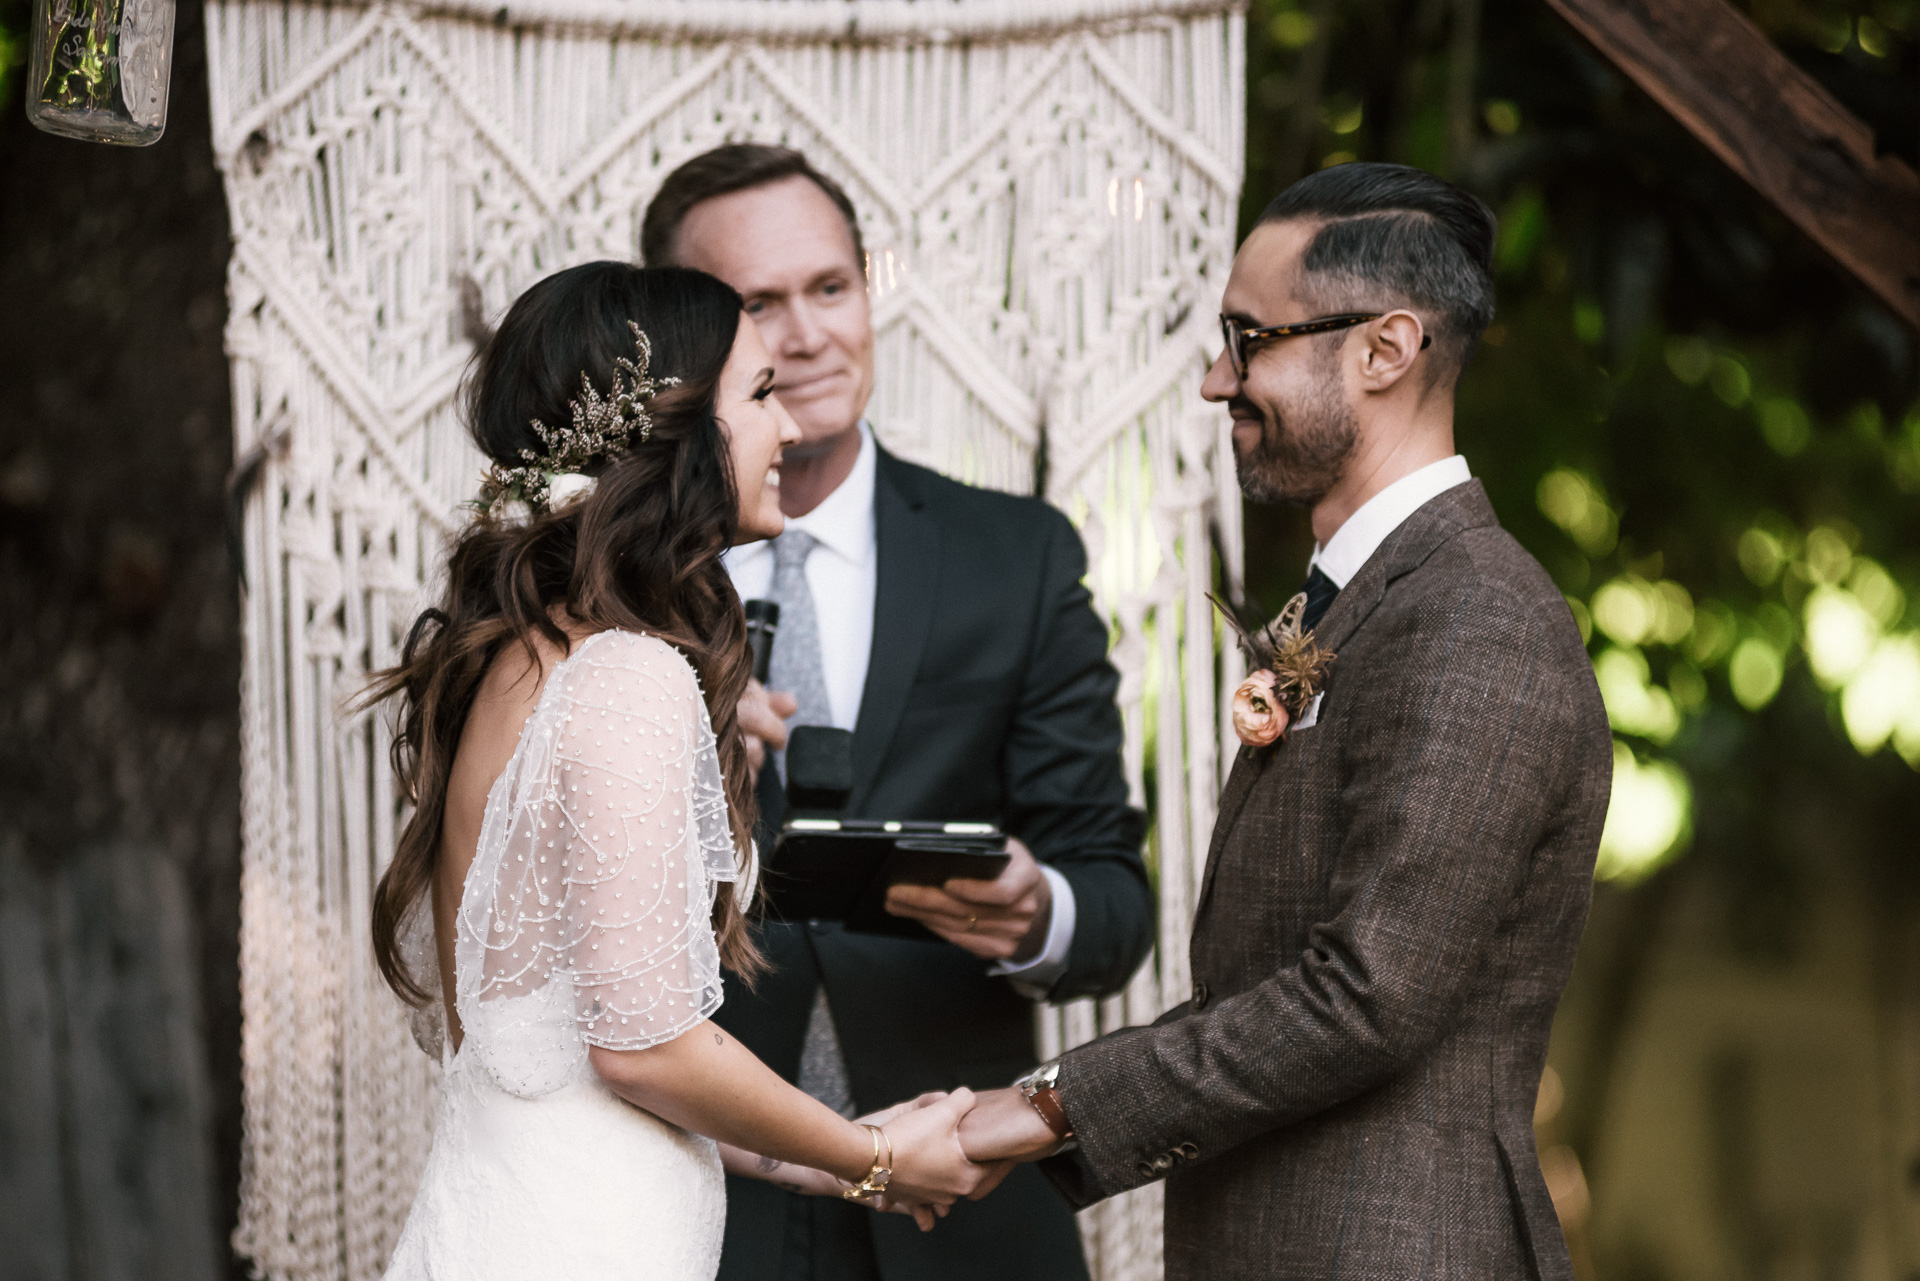 bride and groom share a sweet moment shot by wedding photographer at the charming St. George Hotel in Volcano California